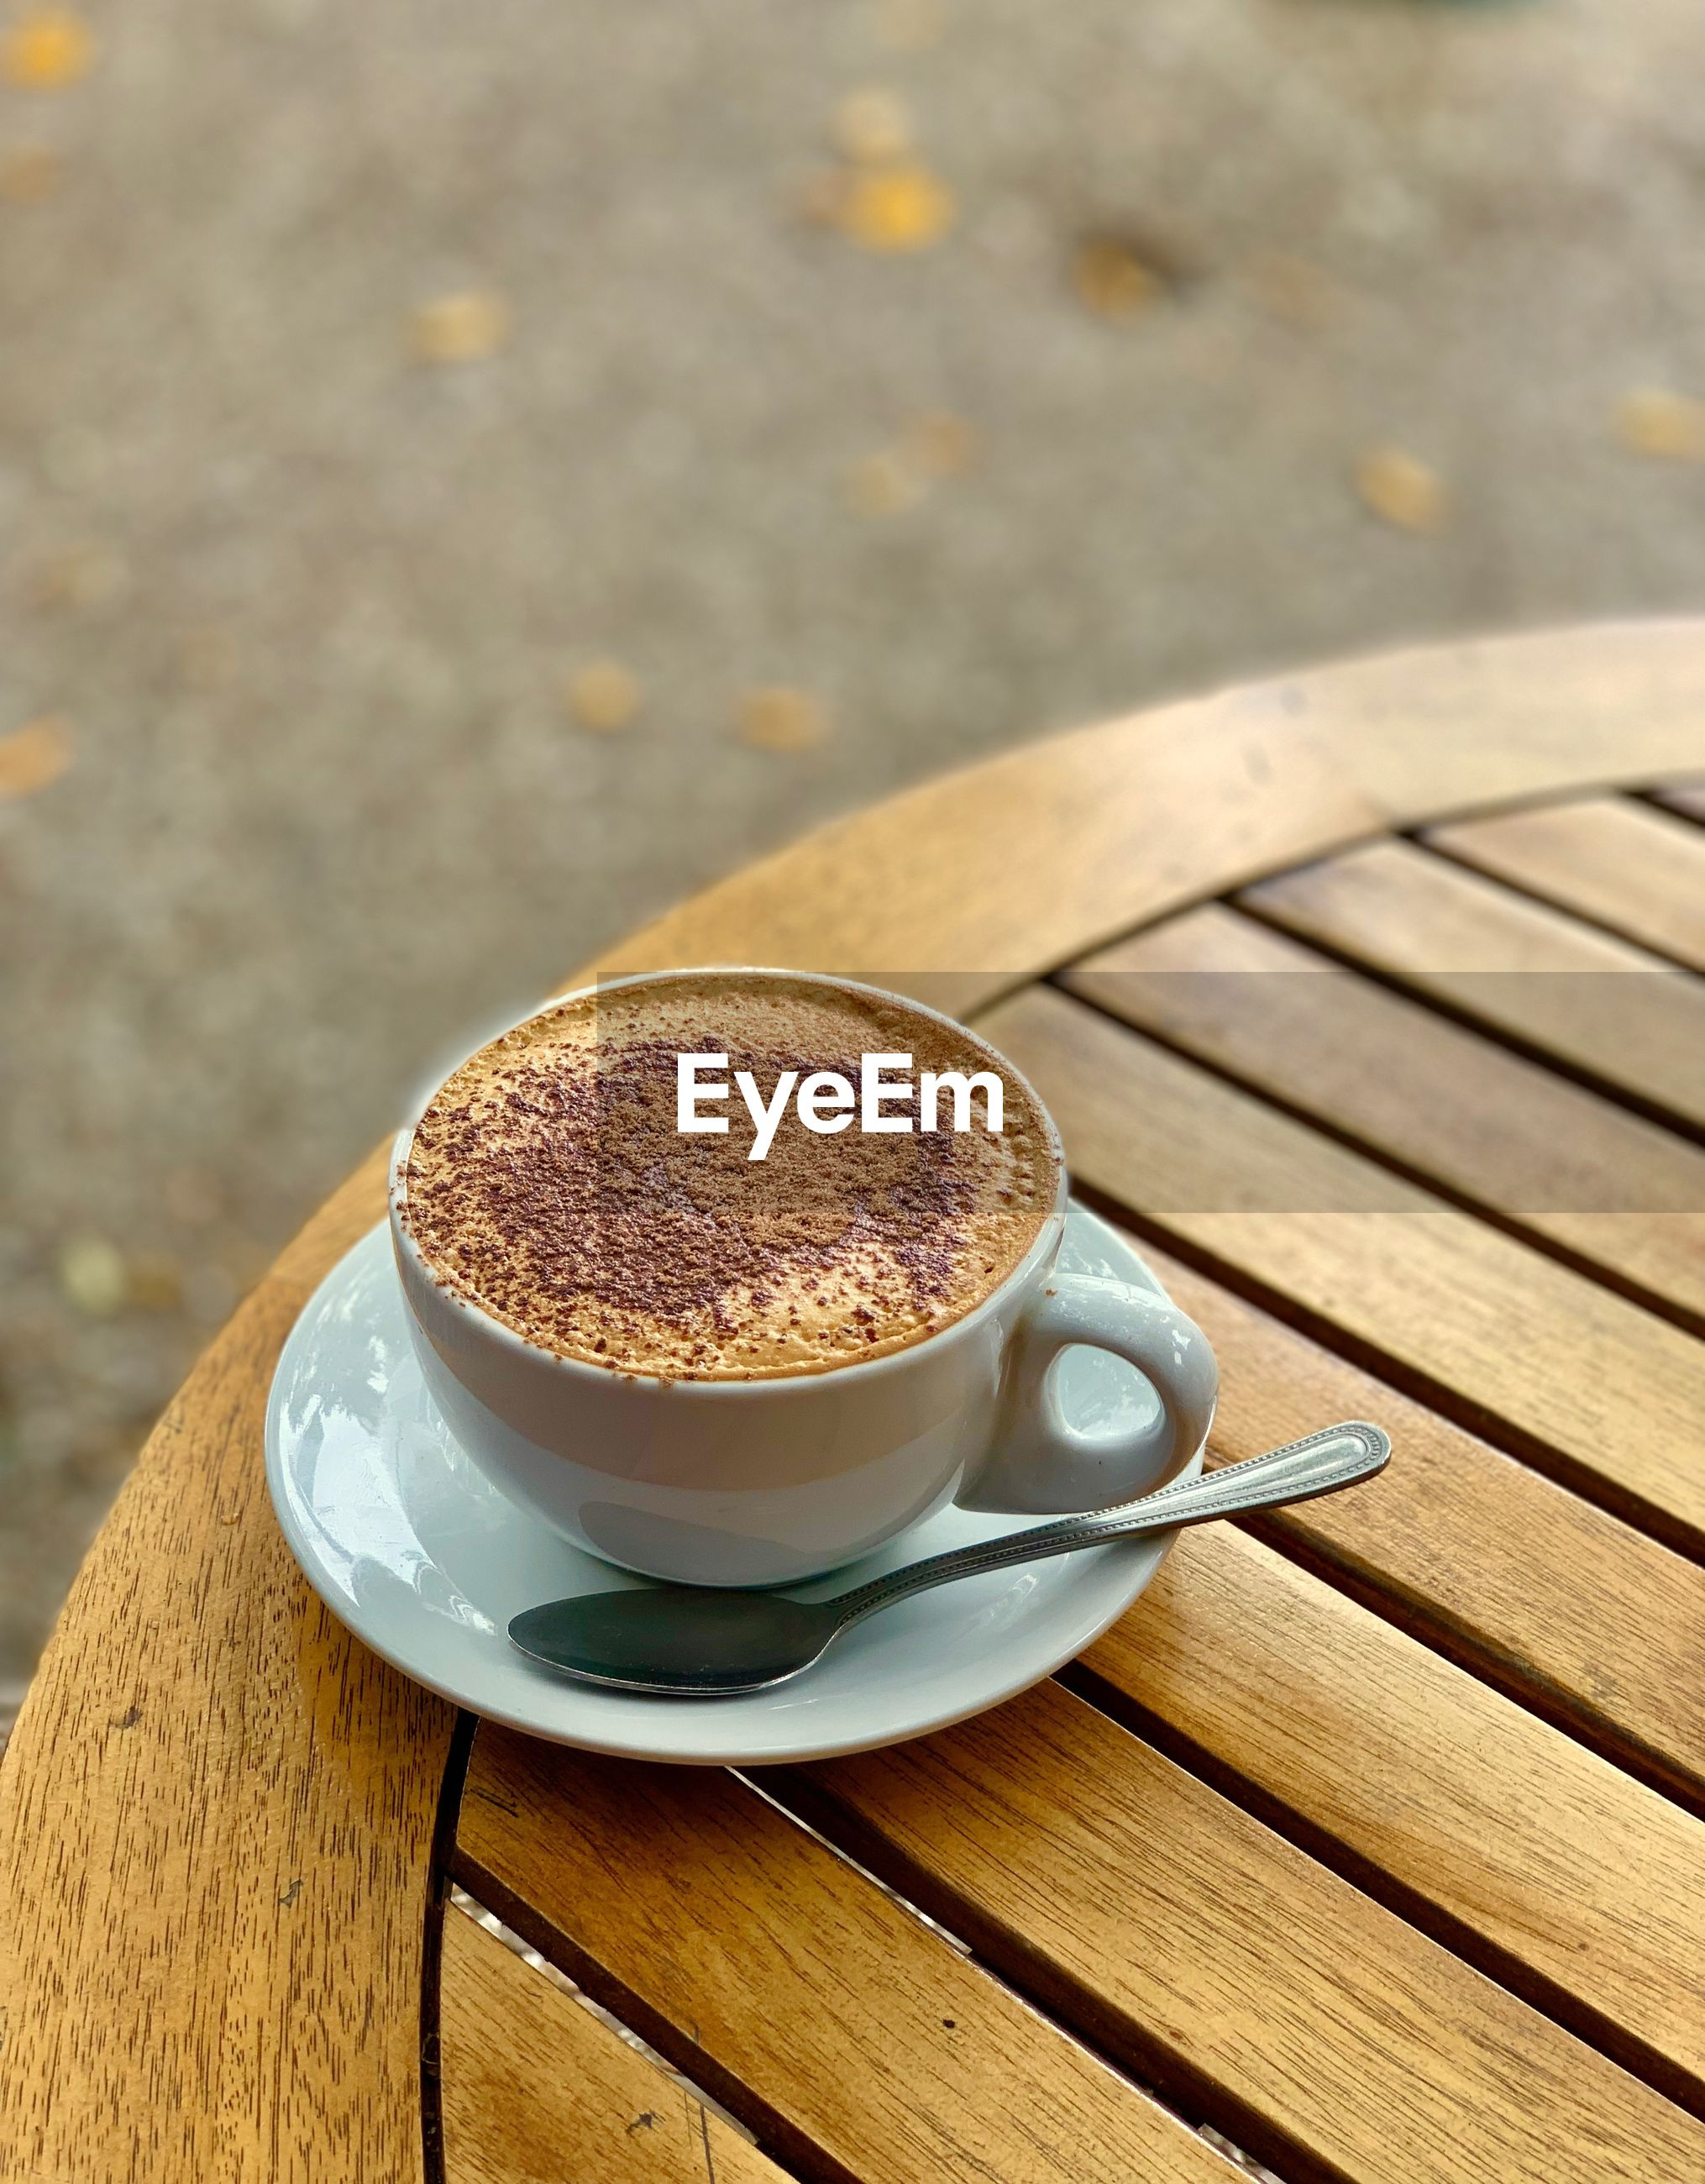 HIGH ANGLE VIEW OF COFFEE CUP ON TABLE AGAINST WOODEN BACKGROUND